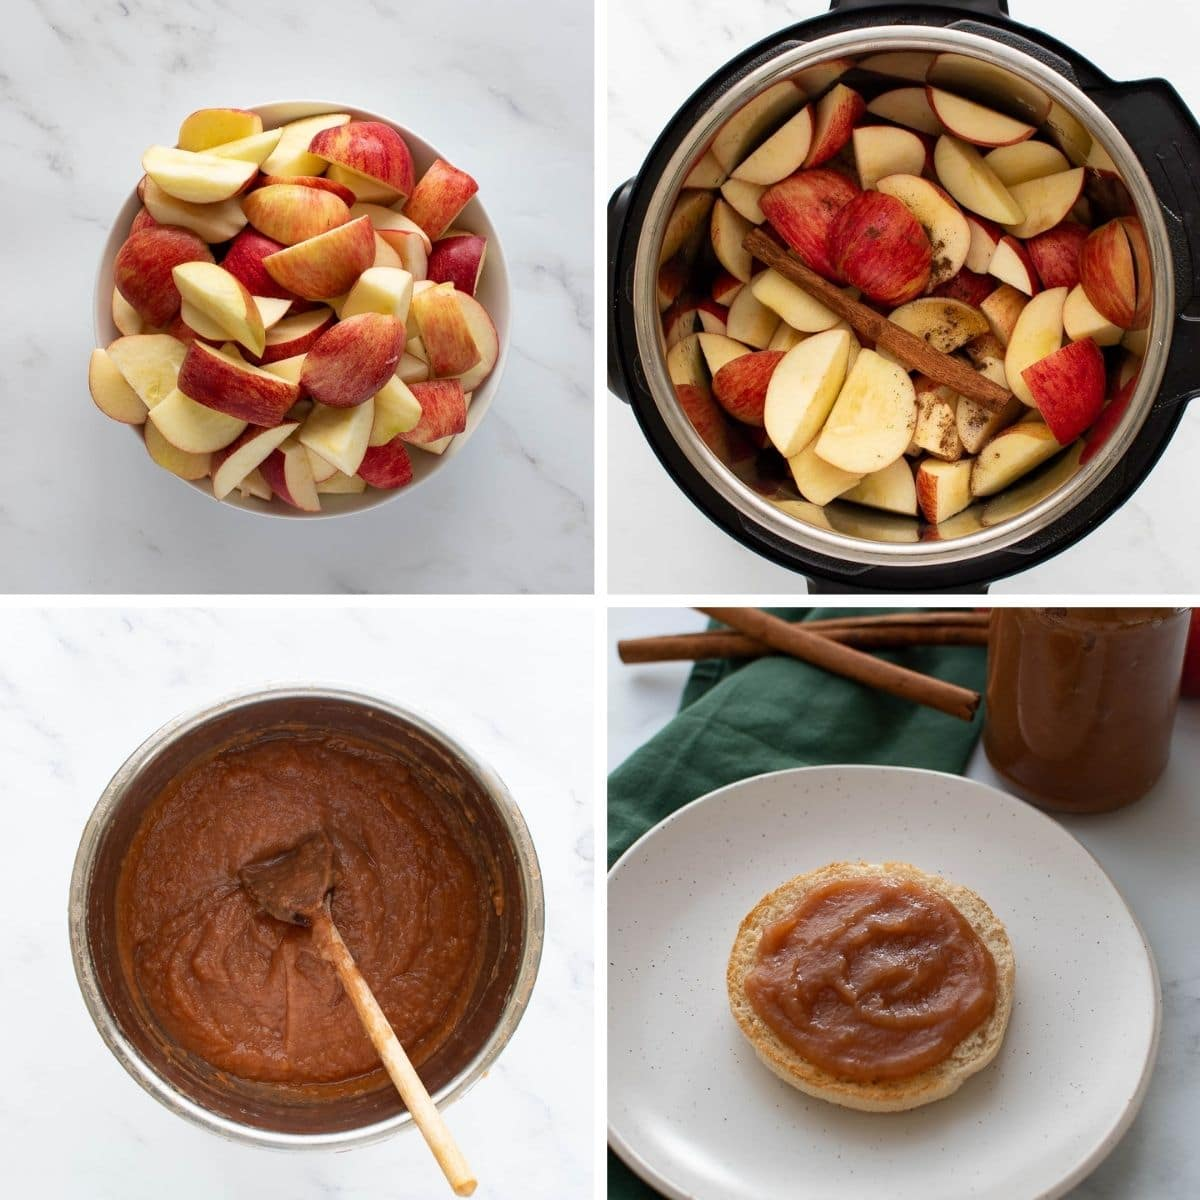 Step by step images showing how to make apple butter in the pressure cooker.